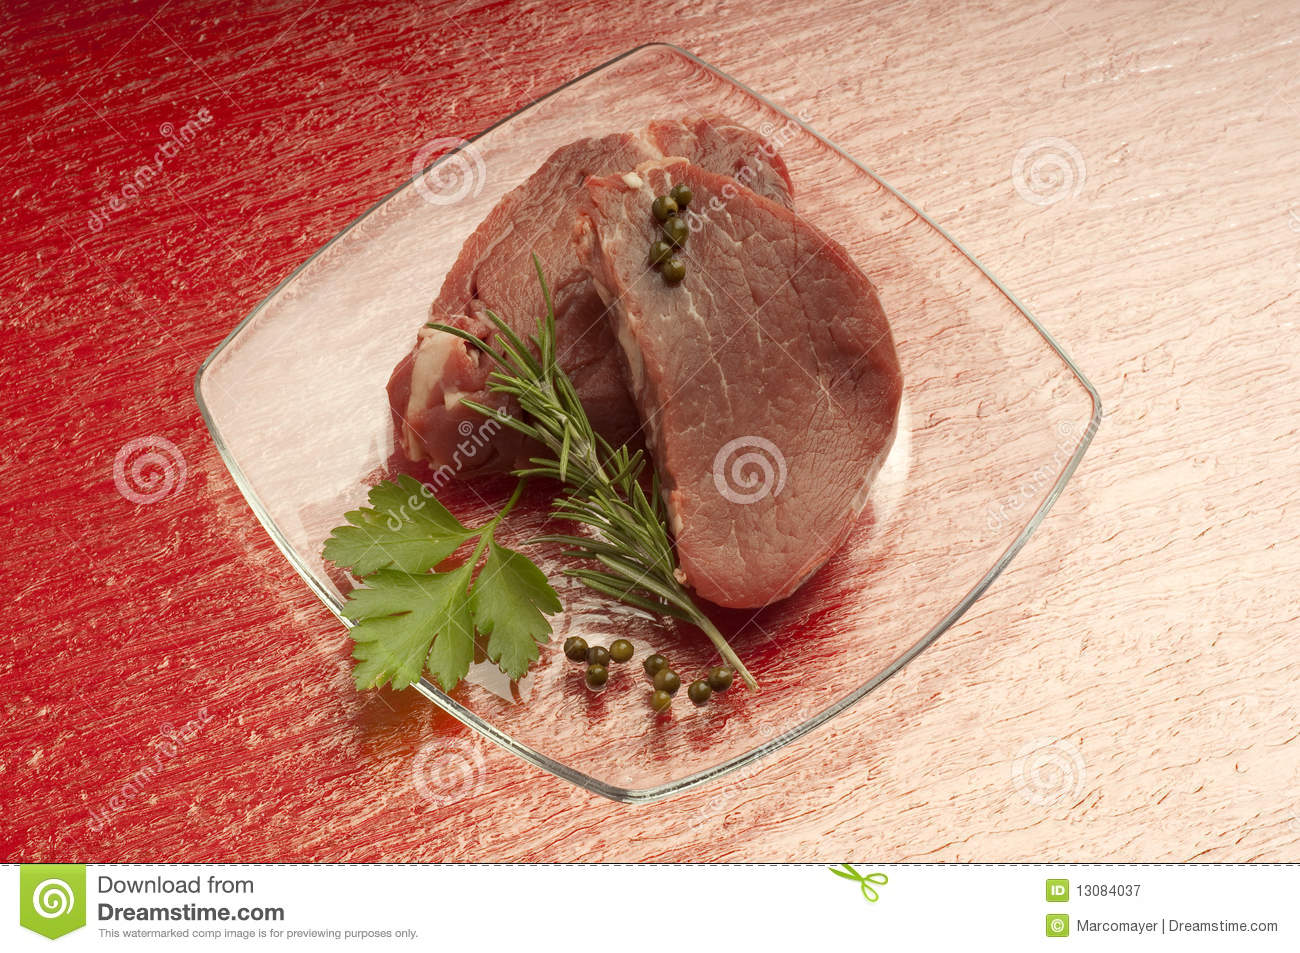 Raw tenderloin